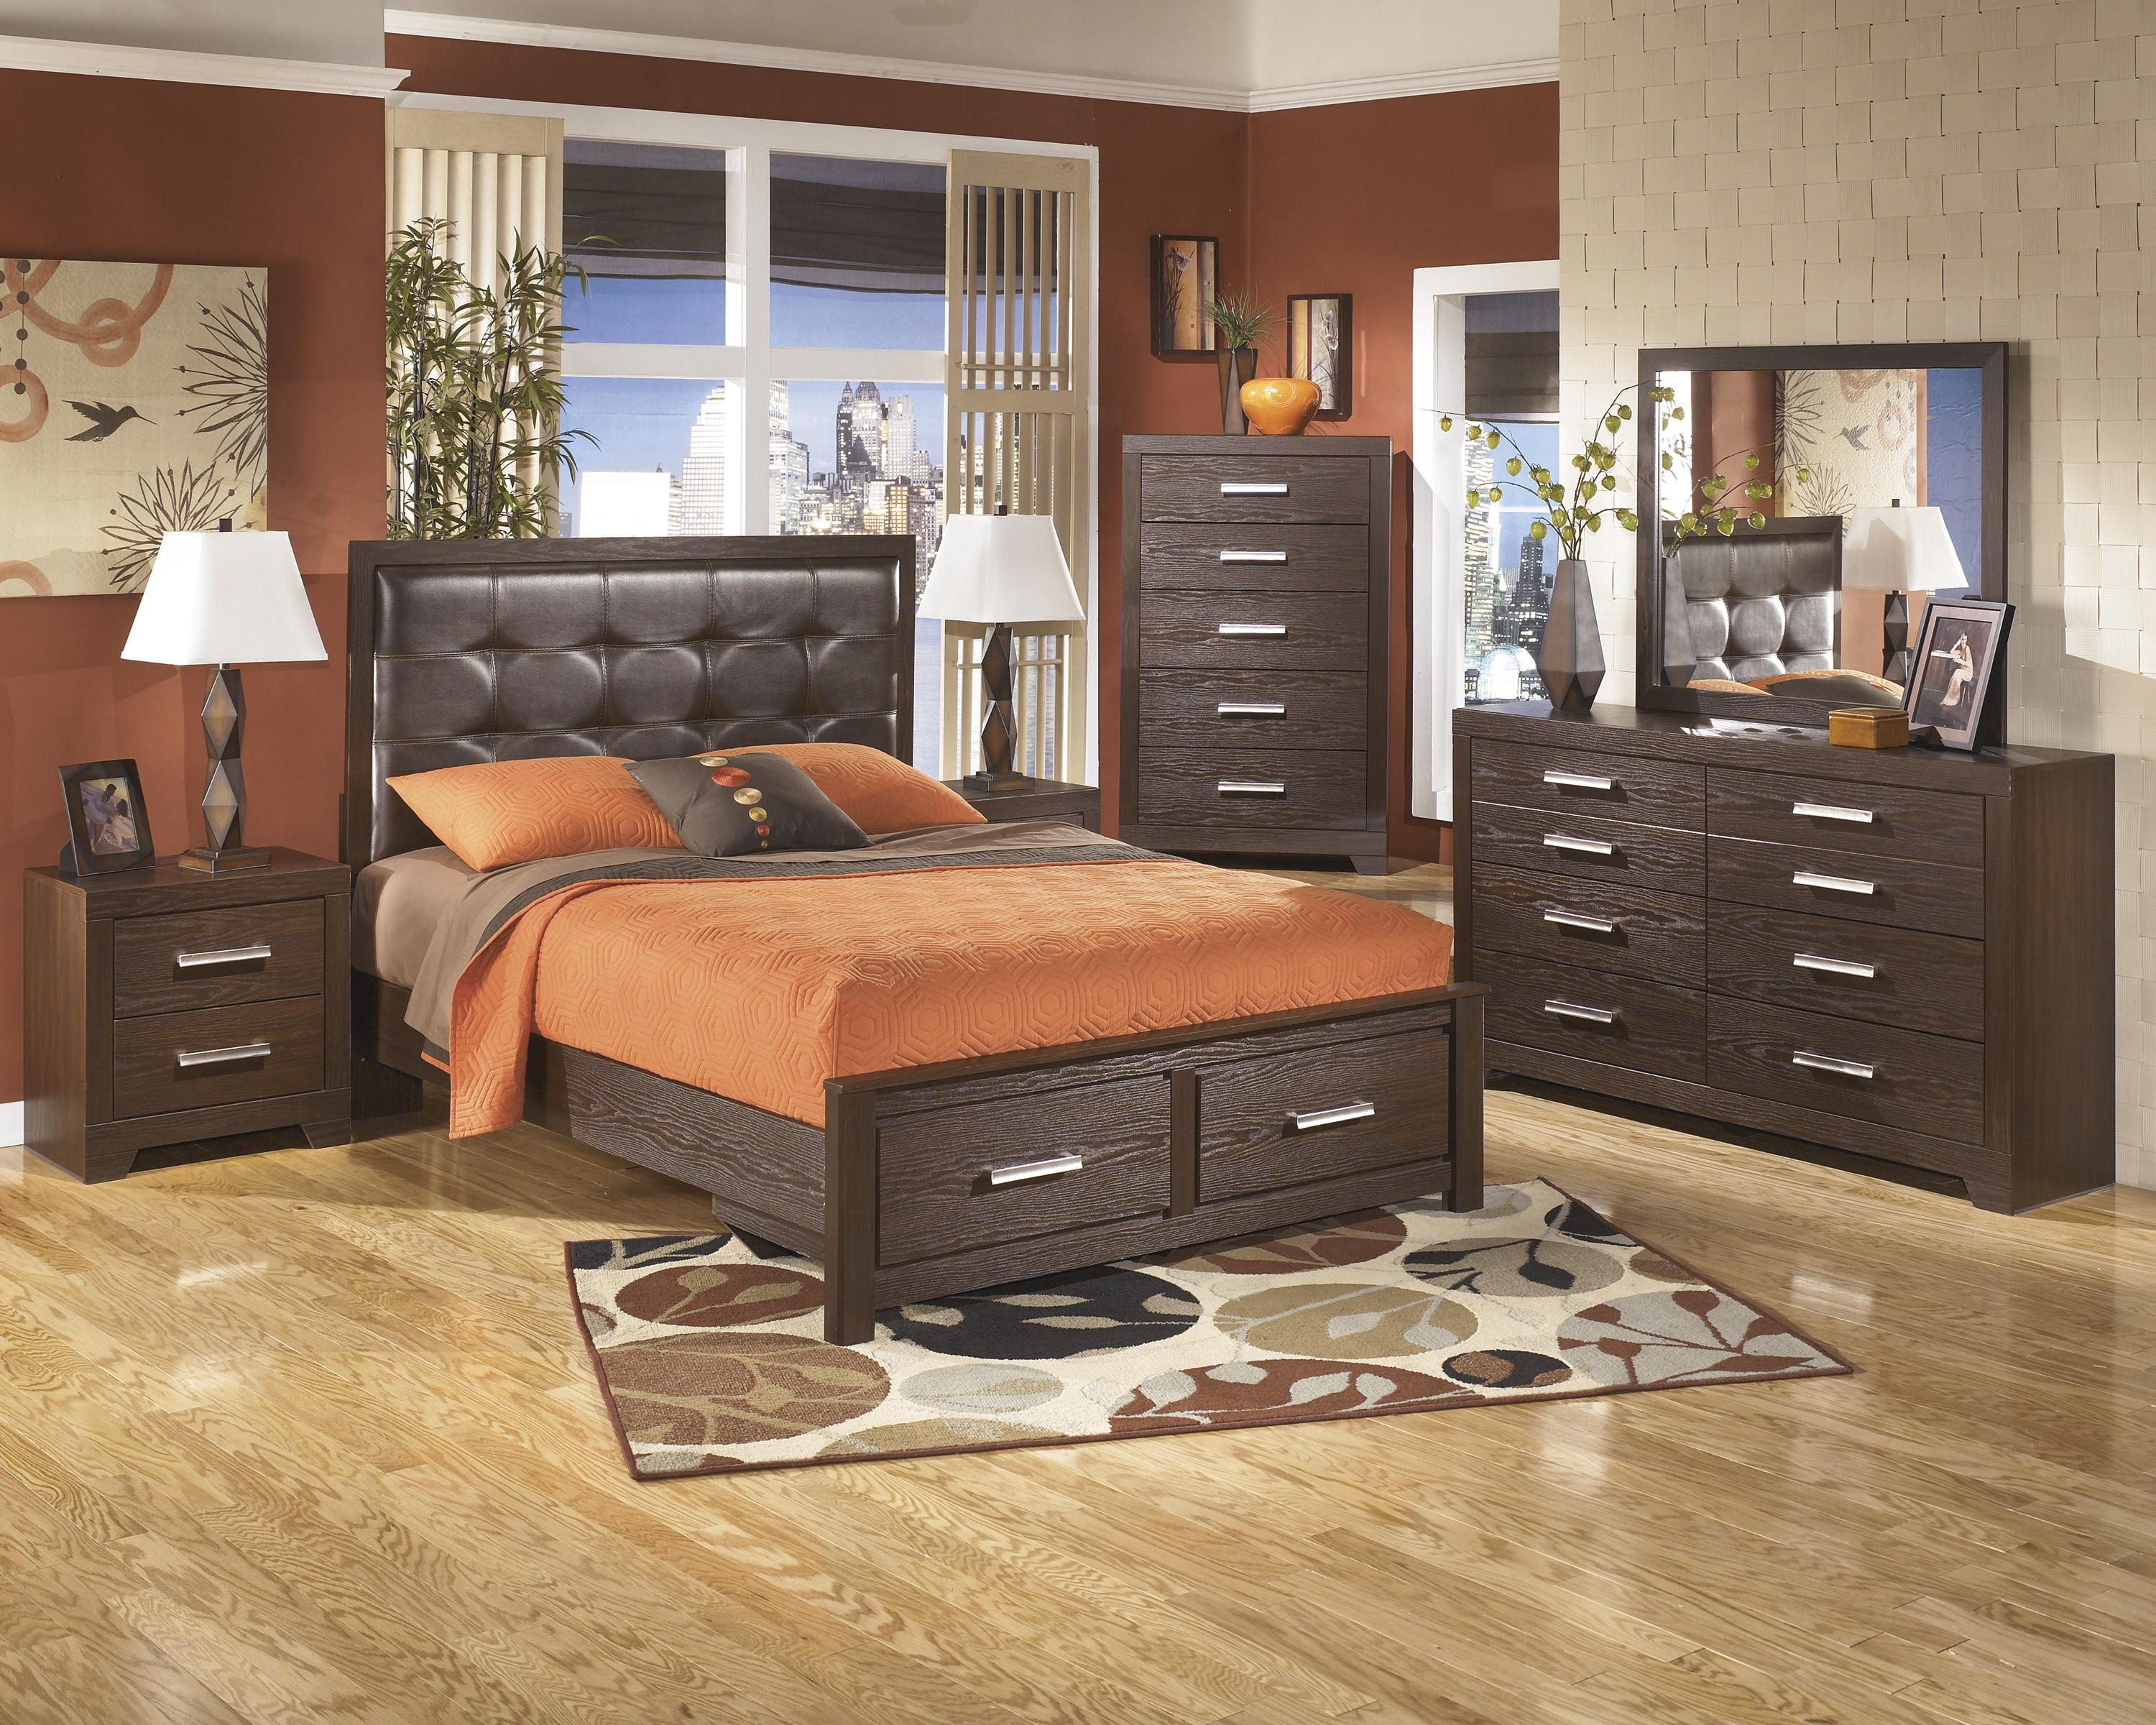 Signature Design by Ashley Aleydis Queen Bedroom Group - Item Number: B165 Q Bedroom Group 2